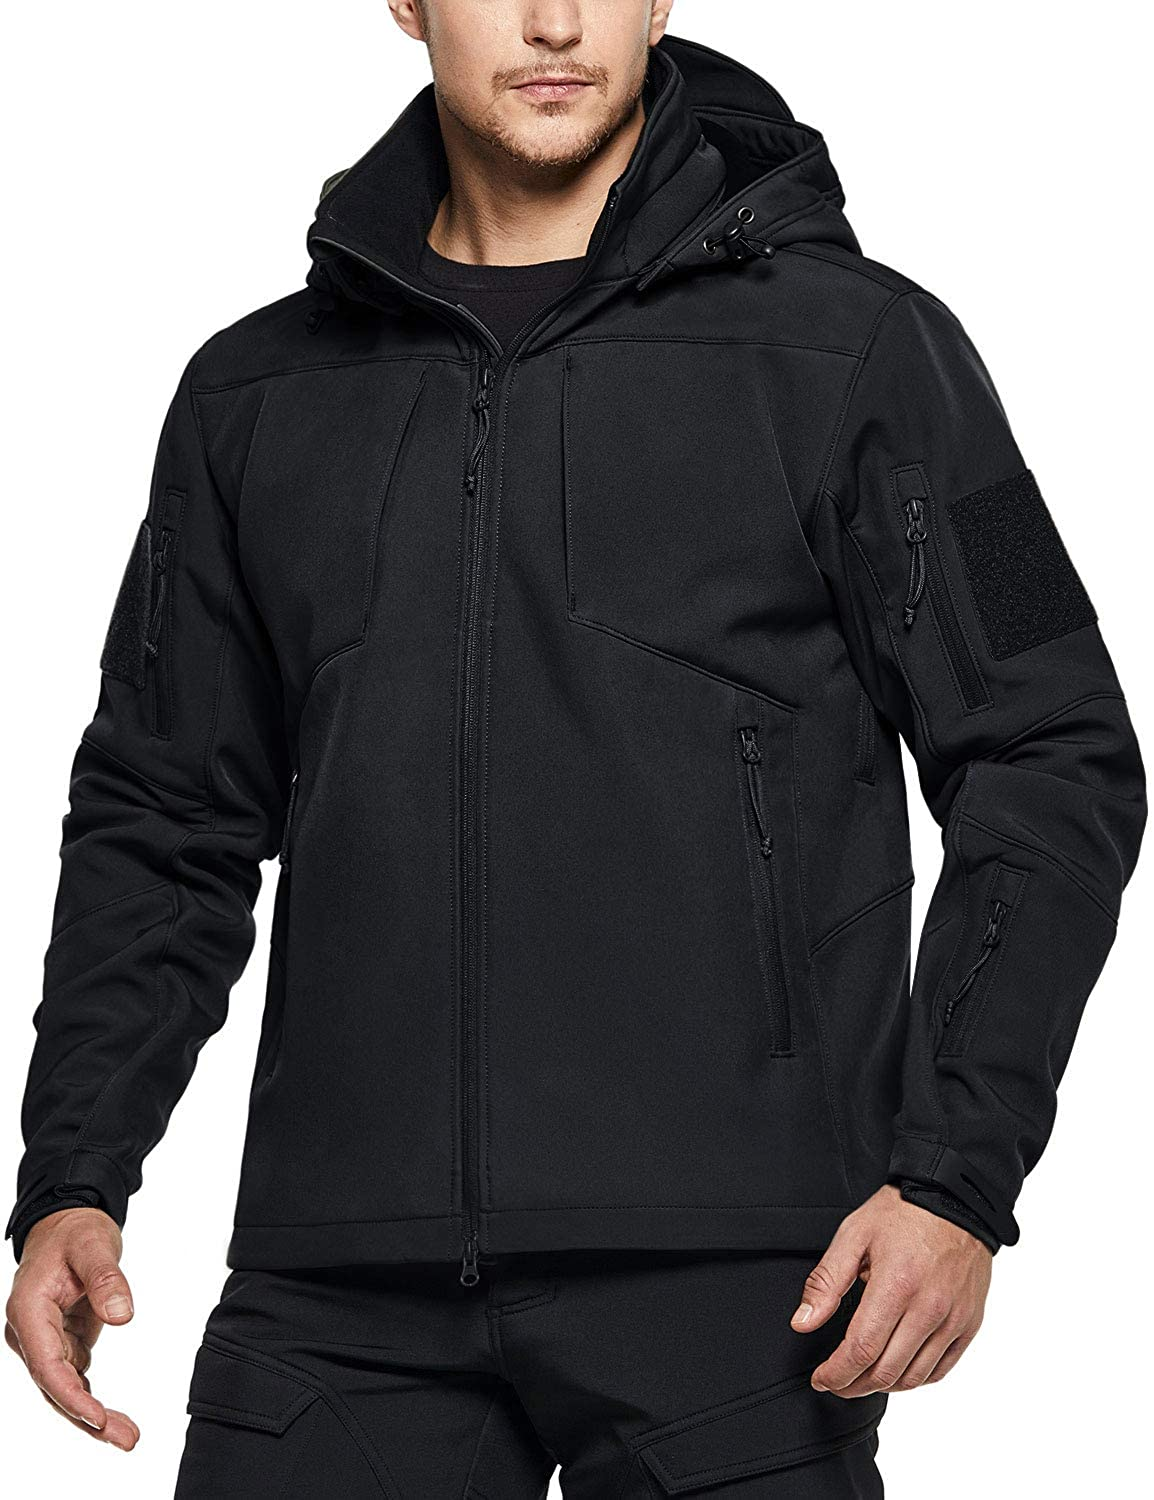 CQR Men's Winter Tactical Easy-to-use Military Waterpro Lightweight All items in the store Jackets